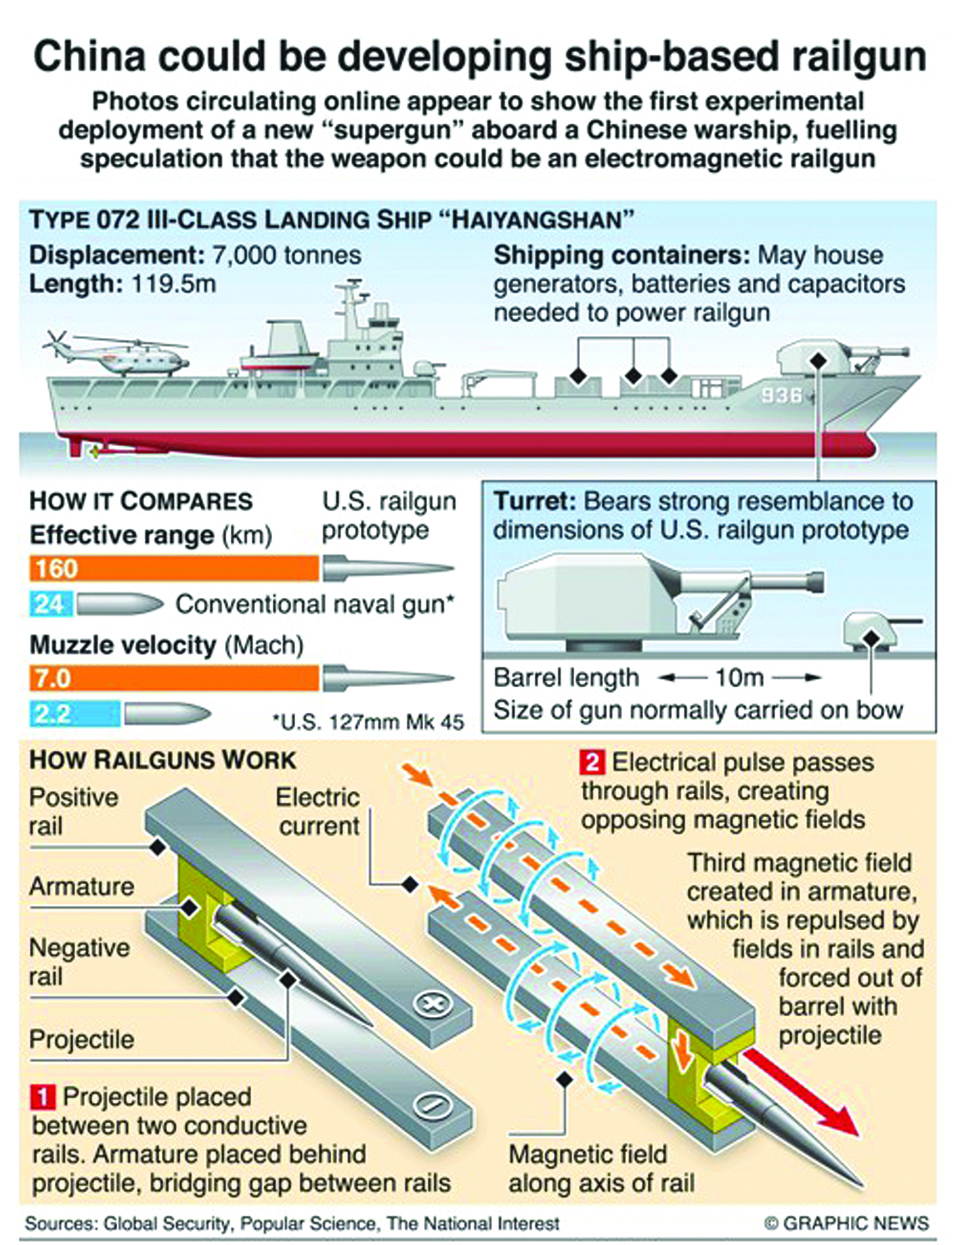 Infographics: Chinese warship spotted with possible electromagnetic railgun